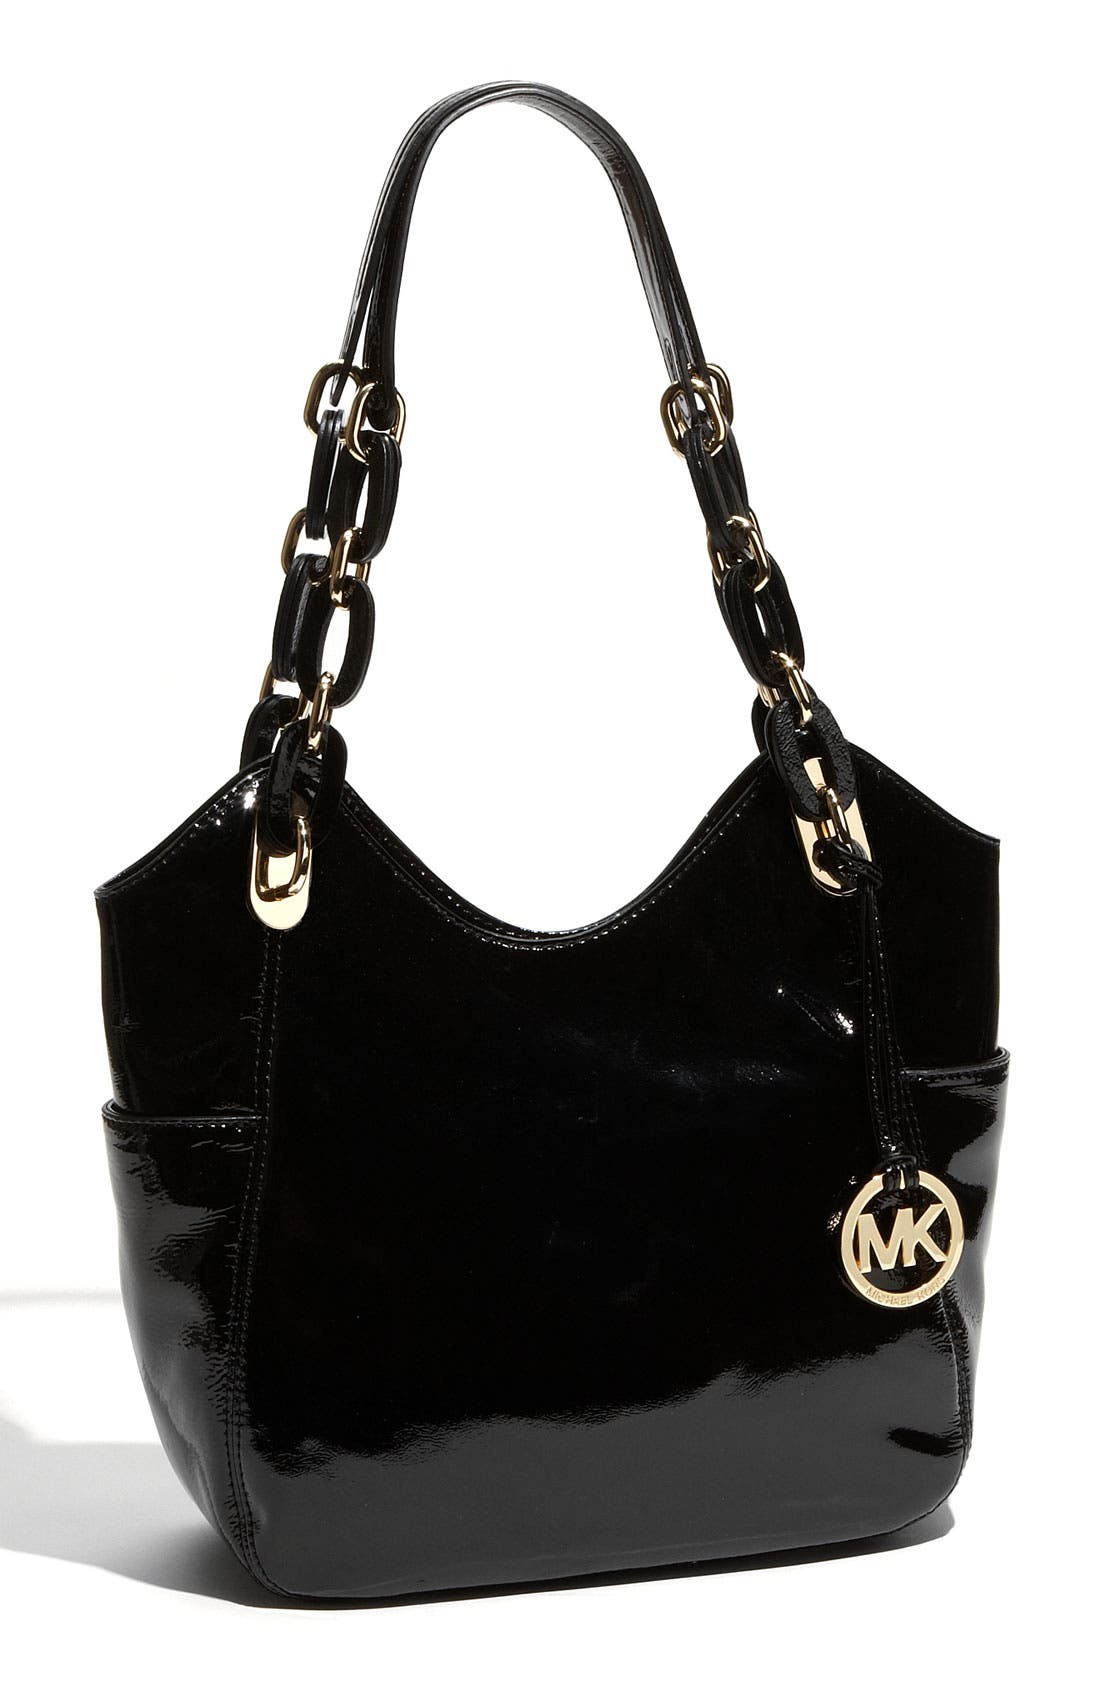 Alternate Image 1 Selected - MICHAEL Michael Kors 'Lilly - Medium' Patent Leather Tote